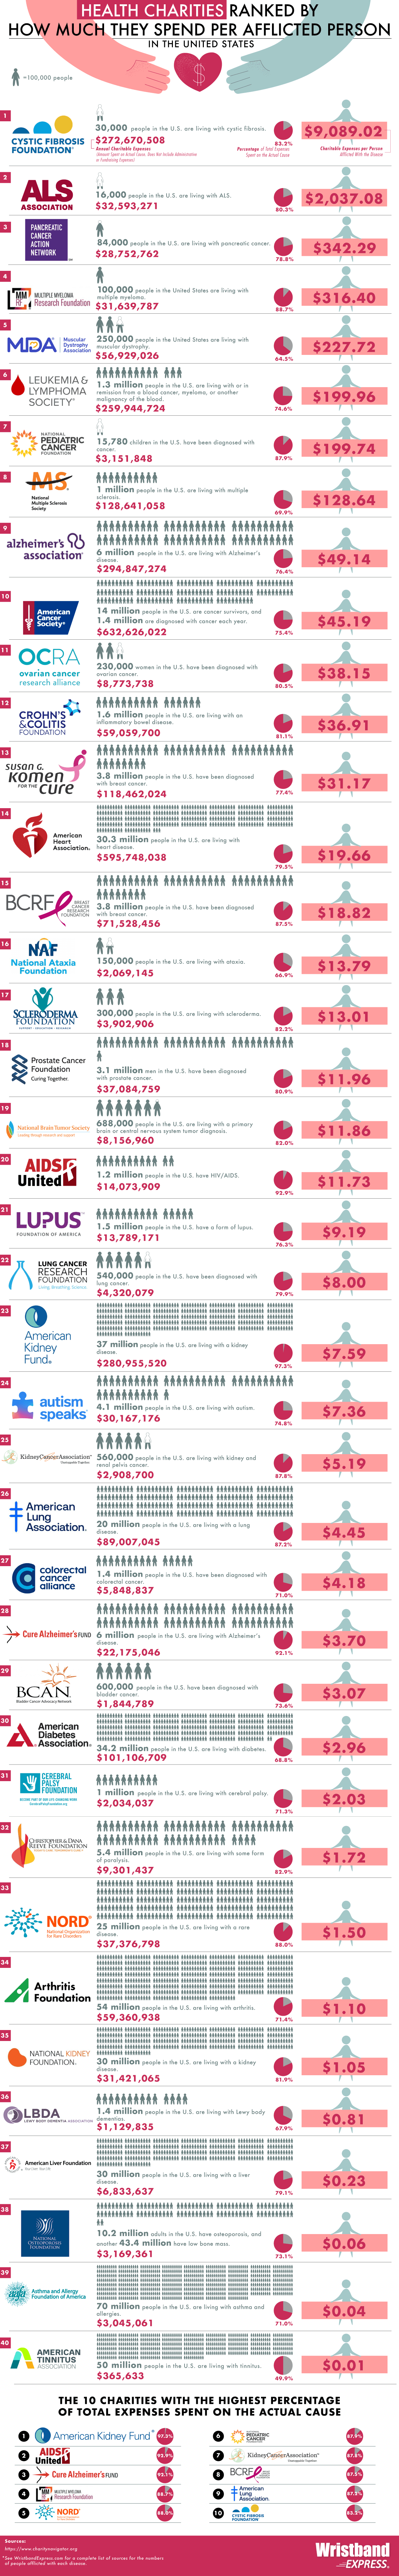 Health Charities Ranked by How Much They Spend per Afflicted Person in the U.S.